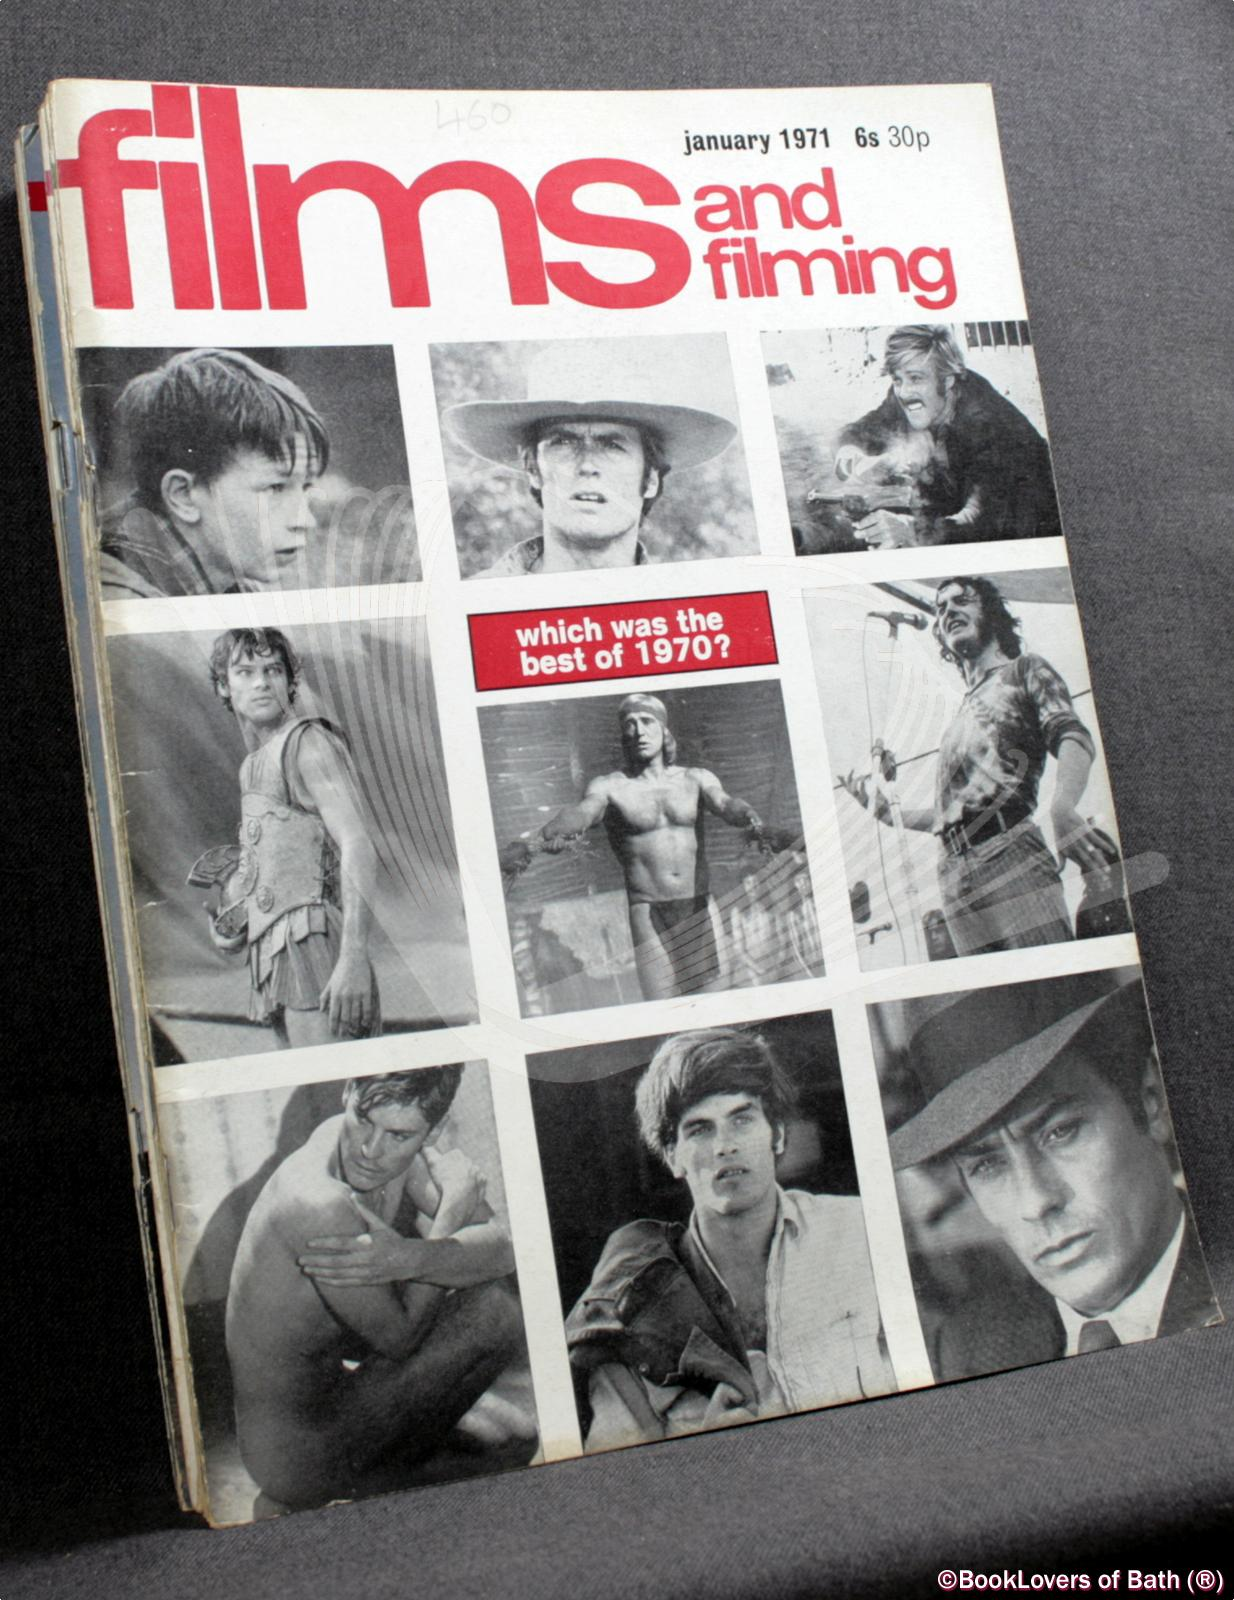 Films and Filming January 1971 Volume 17 Number 4 to October 1971 Volume 18 Number 1 - Edited by Peter Baker